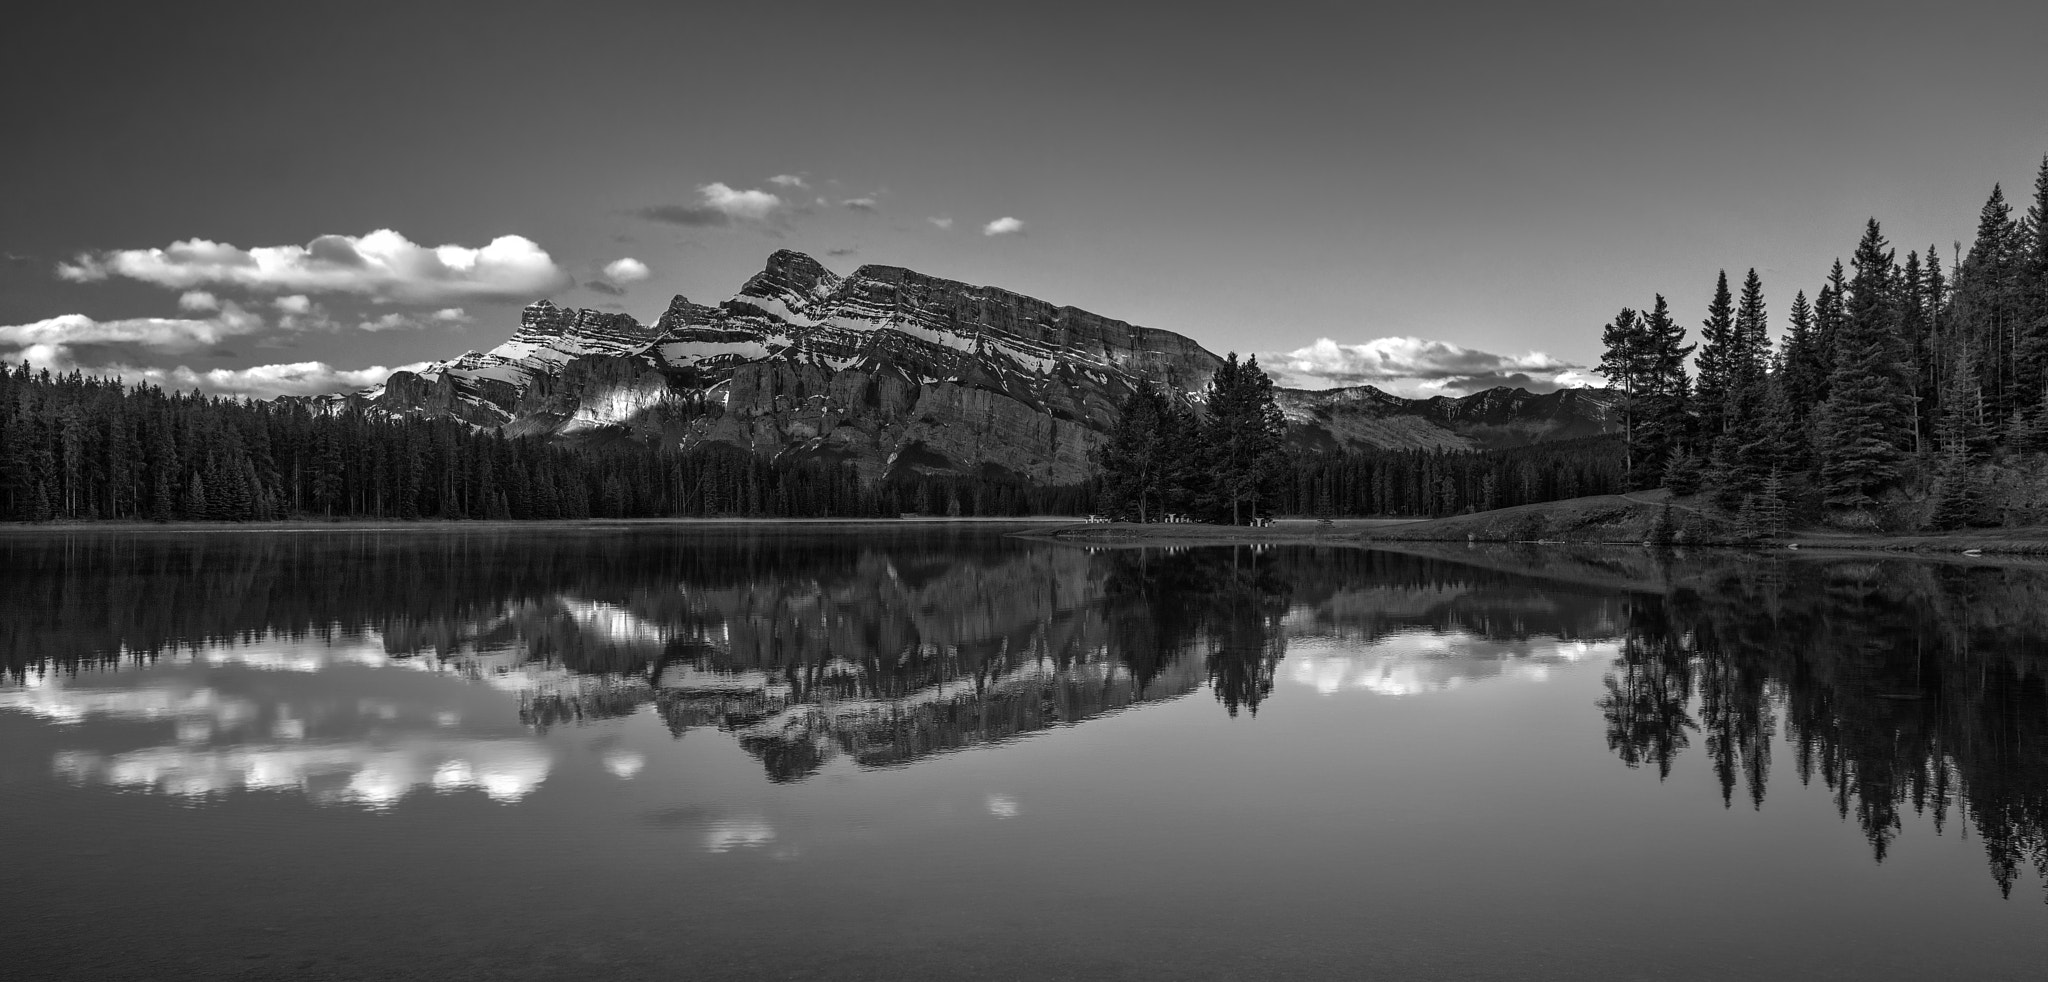 Photograph Two Jack Lake by Sheldon Spurrell on 500px